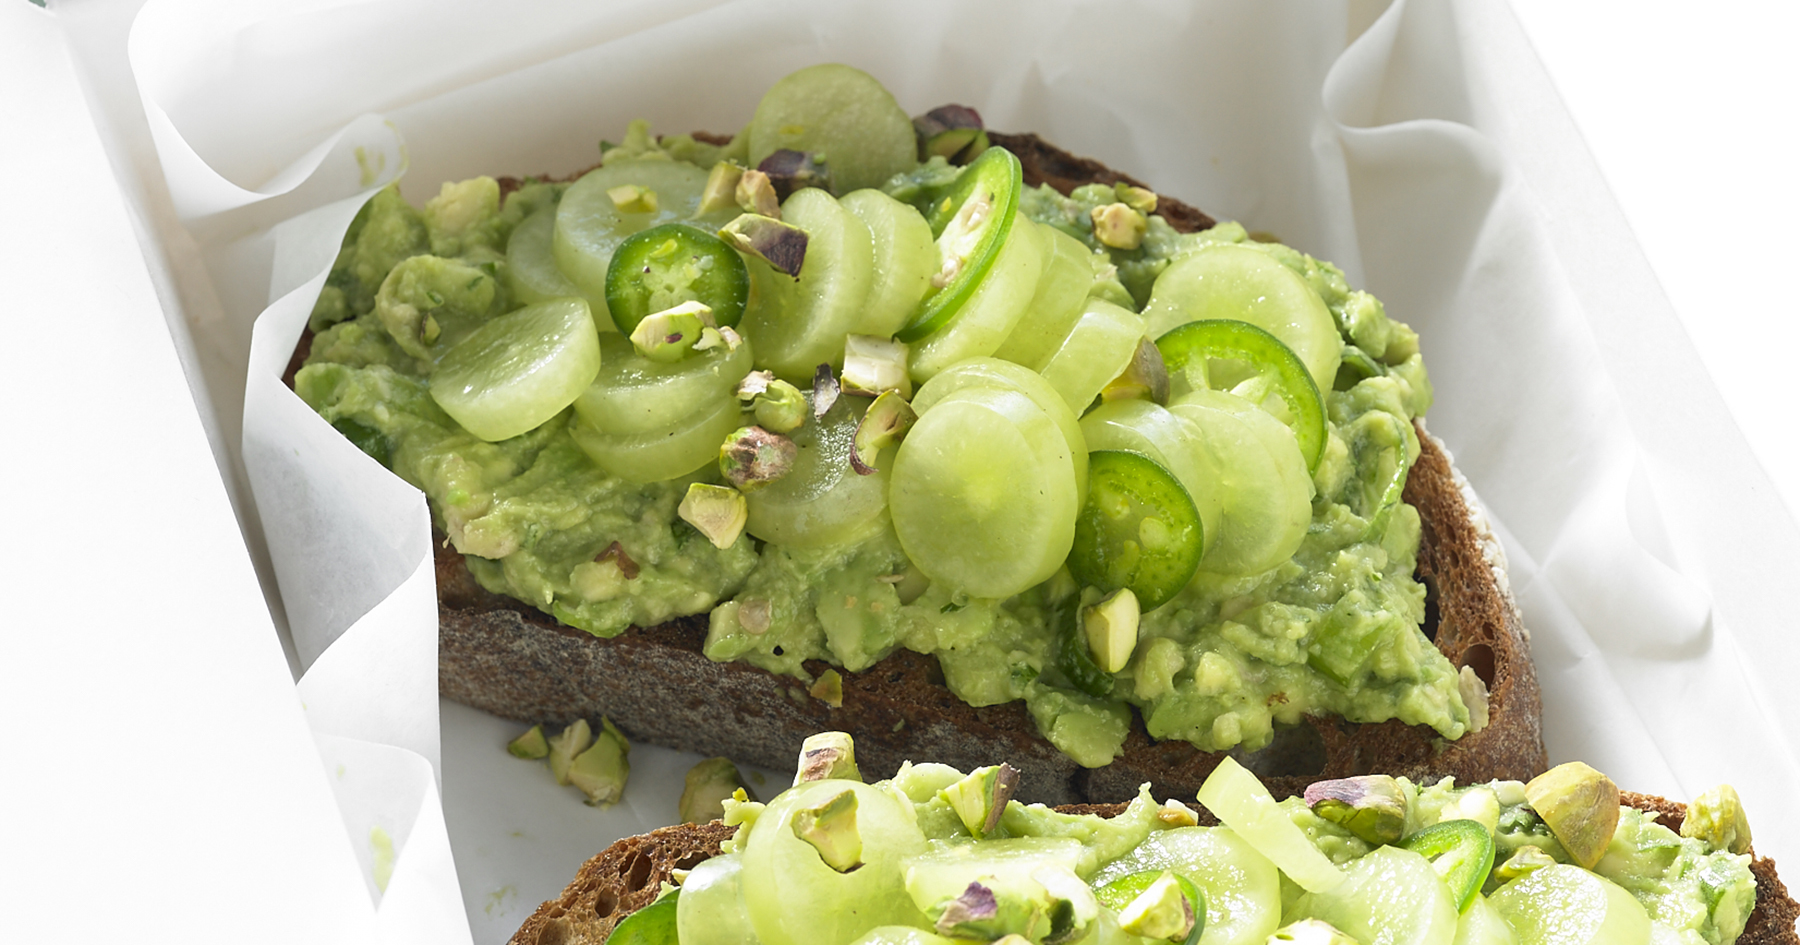 Smashed Avocado Toast With Grapes, Pistachios and Jalapeno